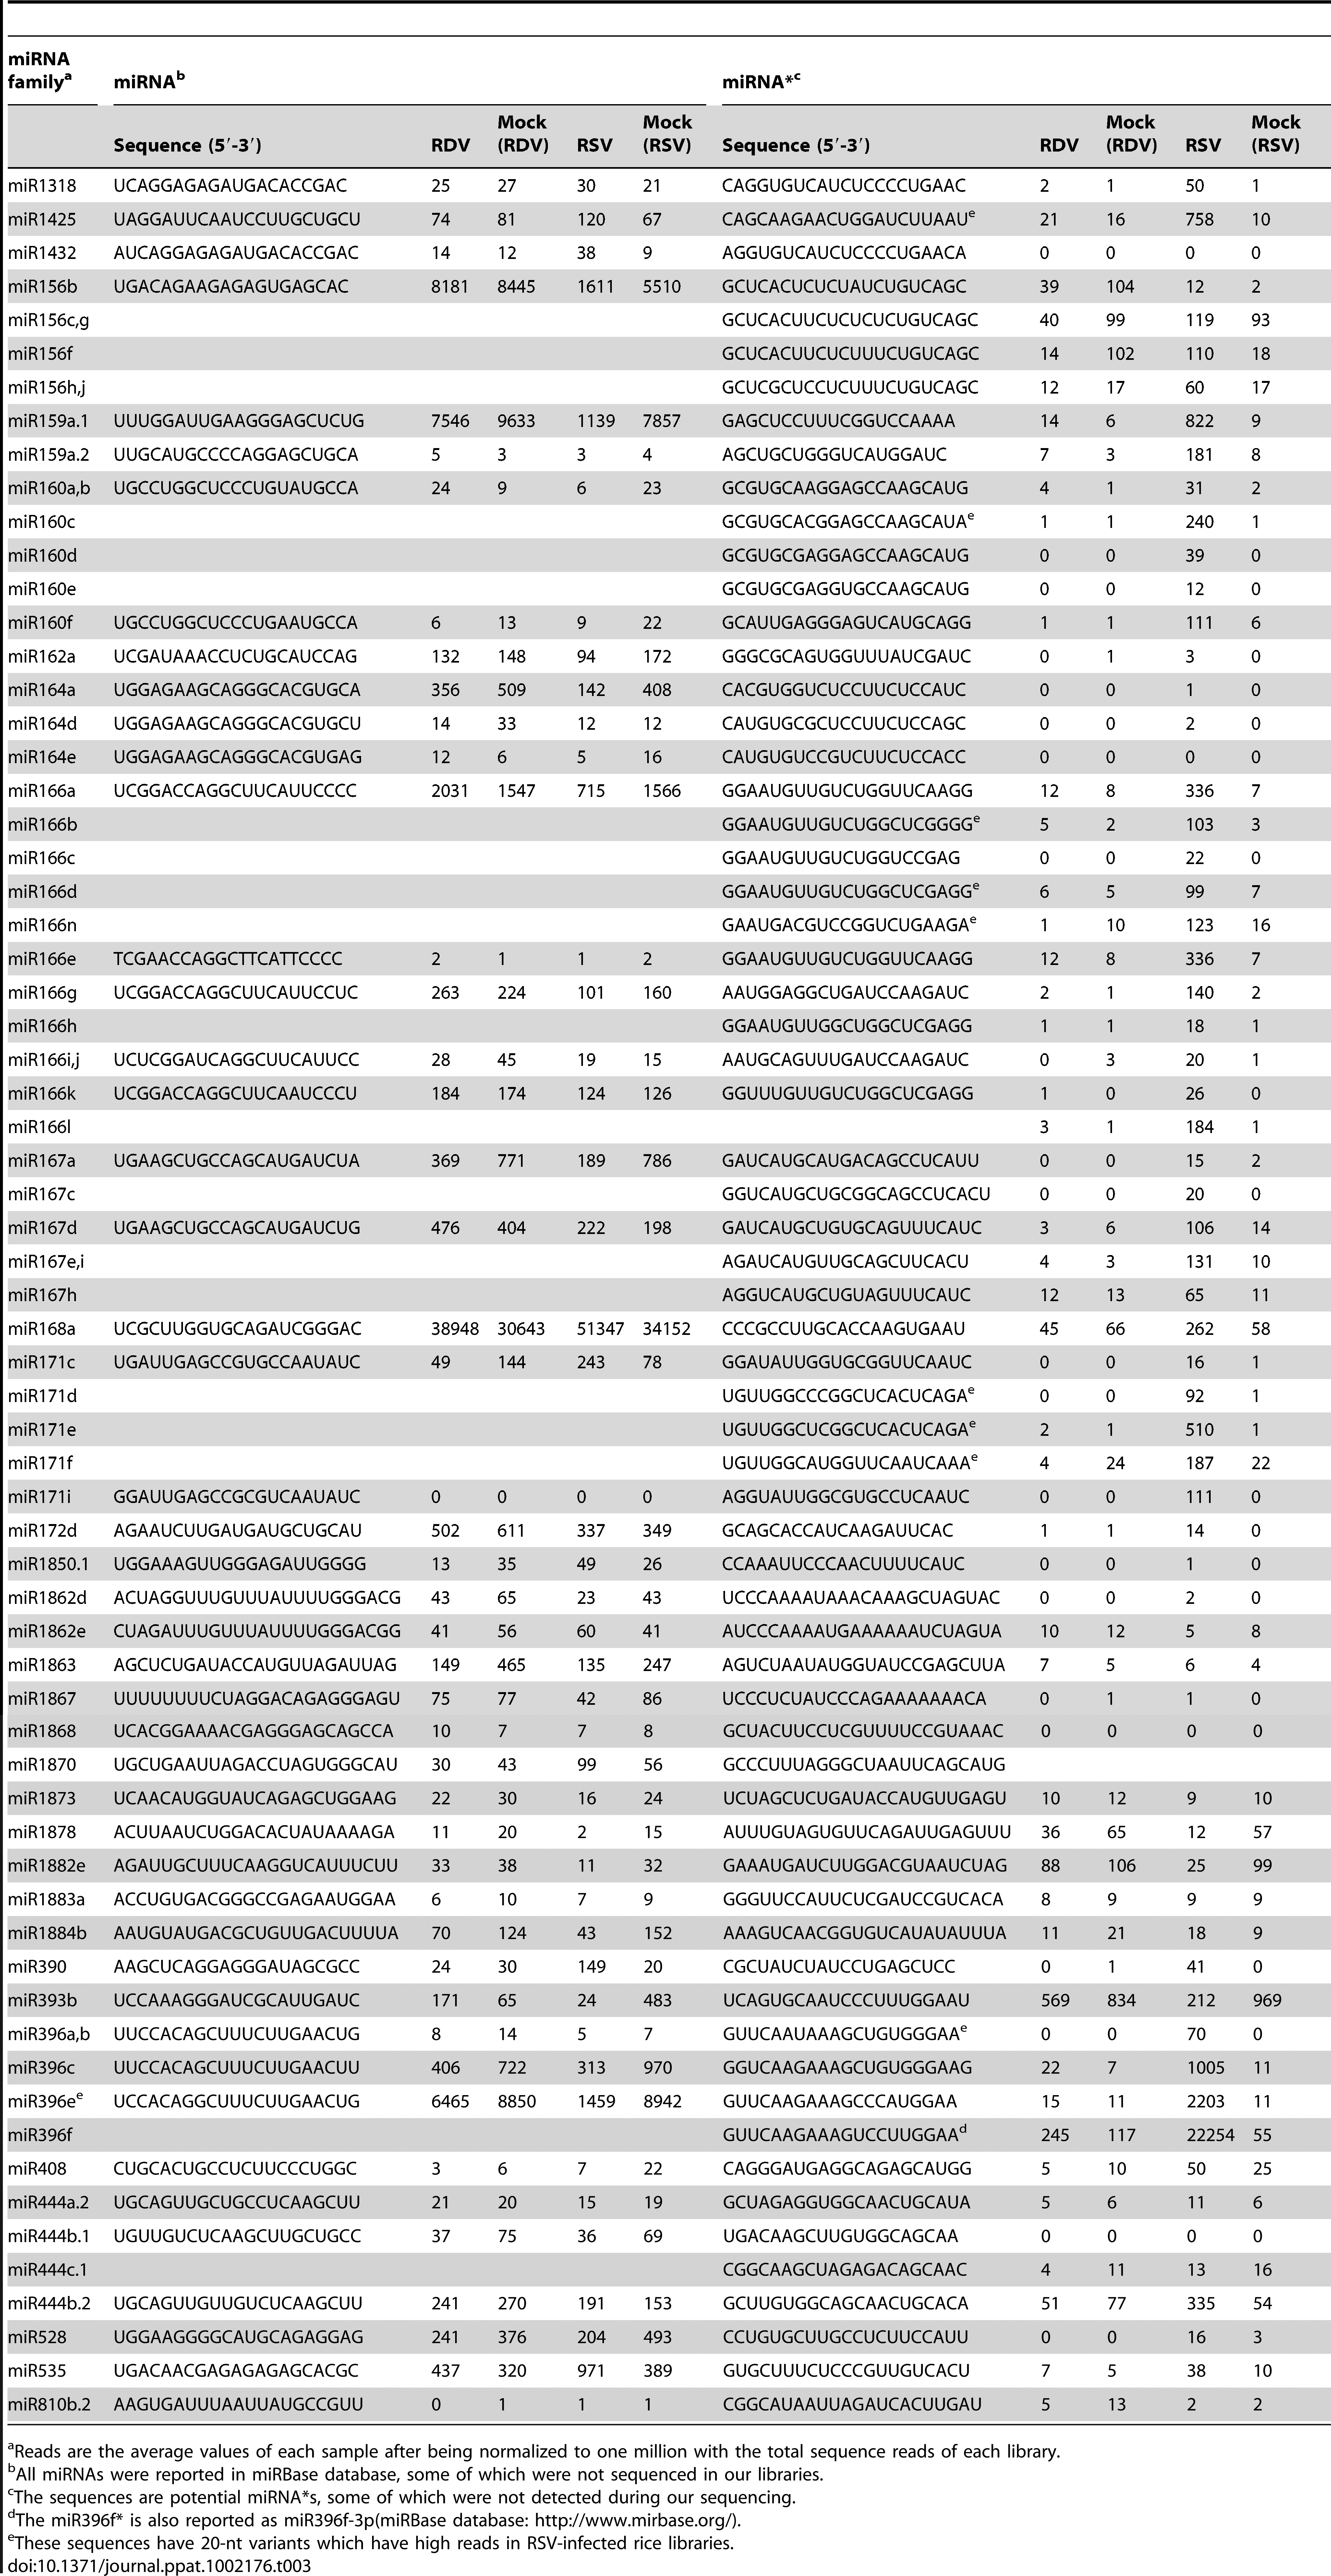 Comparison of deep sequencing reads of known miRNAs and miRNA*s from virus-infected and mock-inoculated rice libraries.